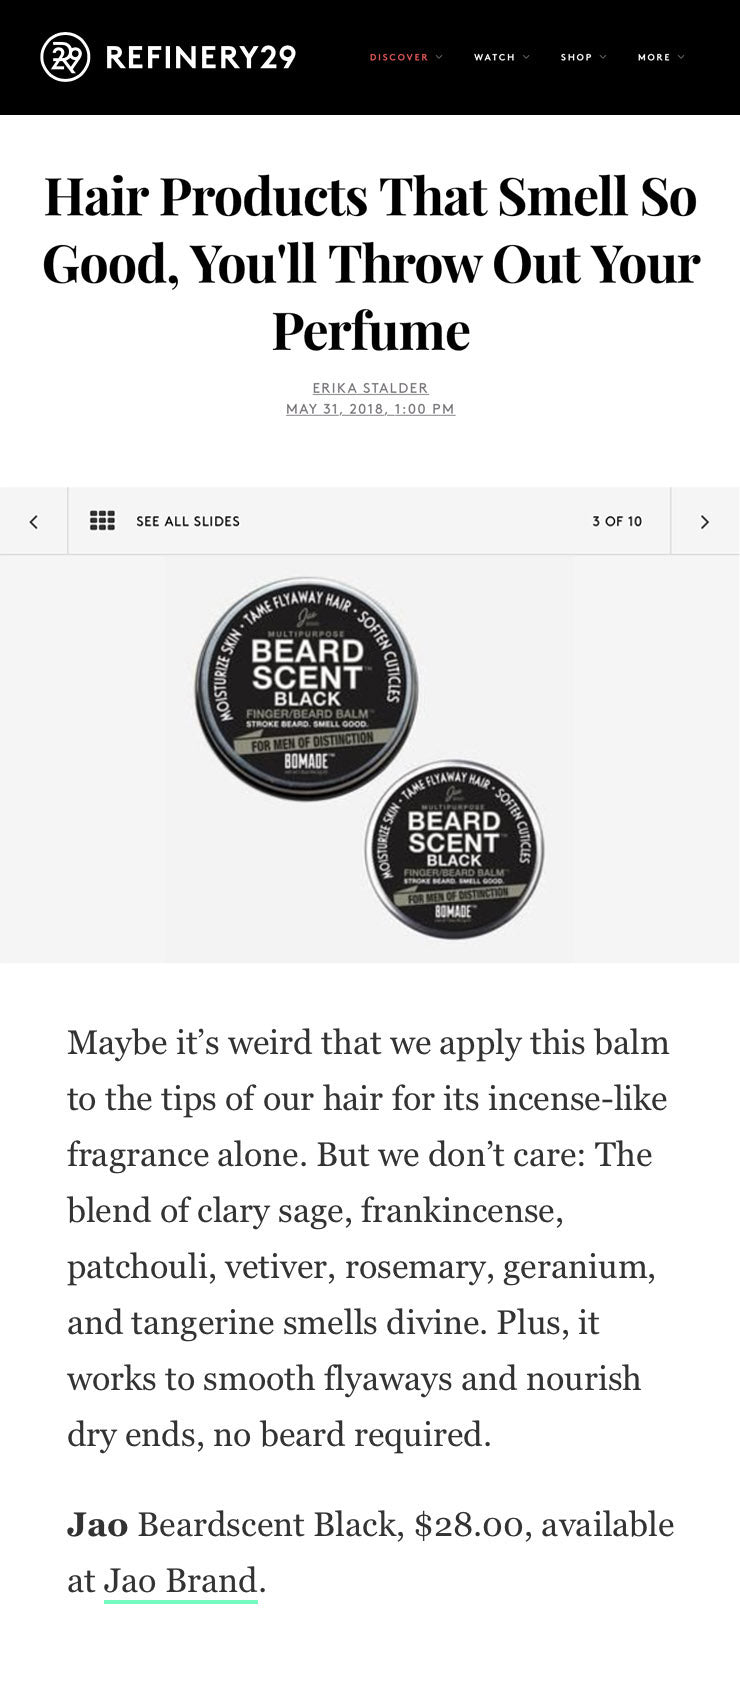 Refinery 29: Hair Products That Smell So Good, You'll Throw Out Your Perfume - Jao Brand BeardScent Black